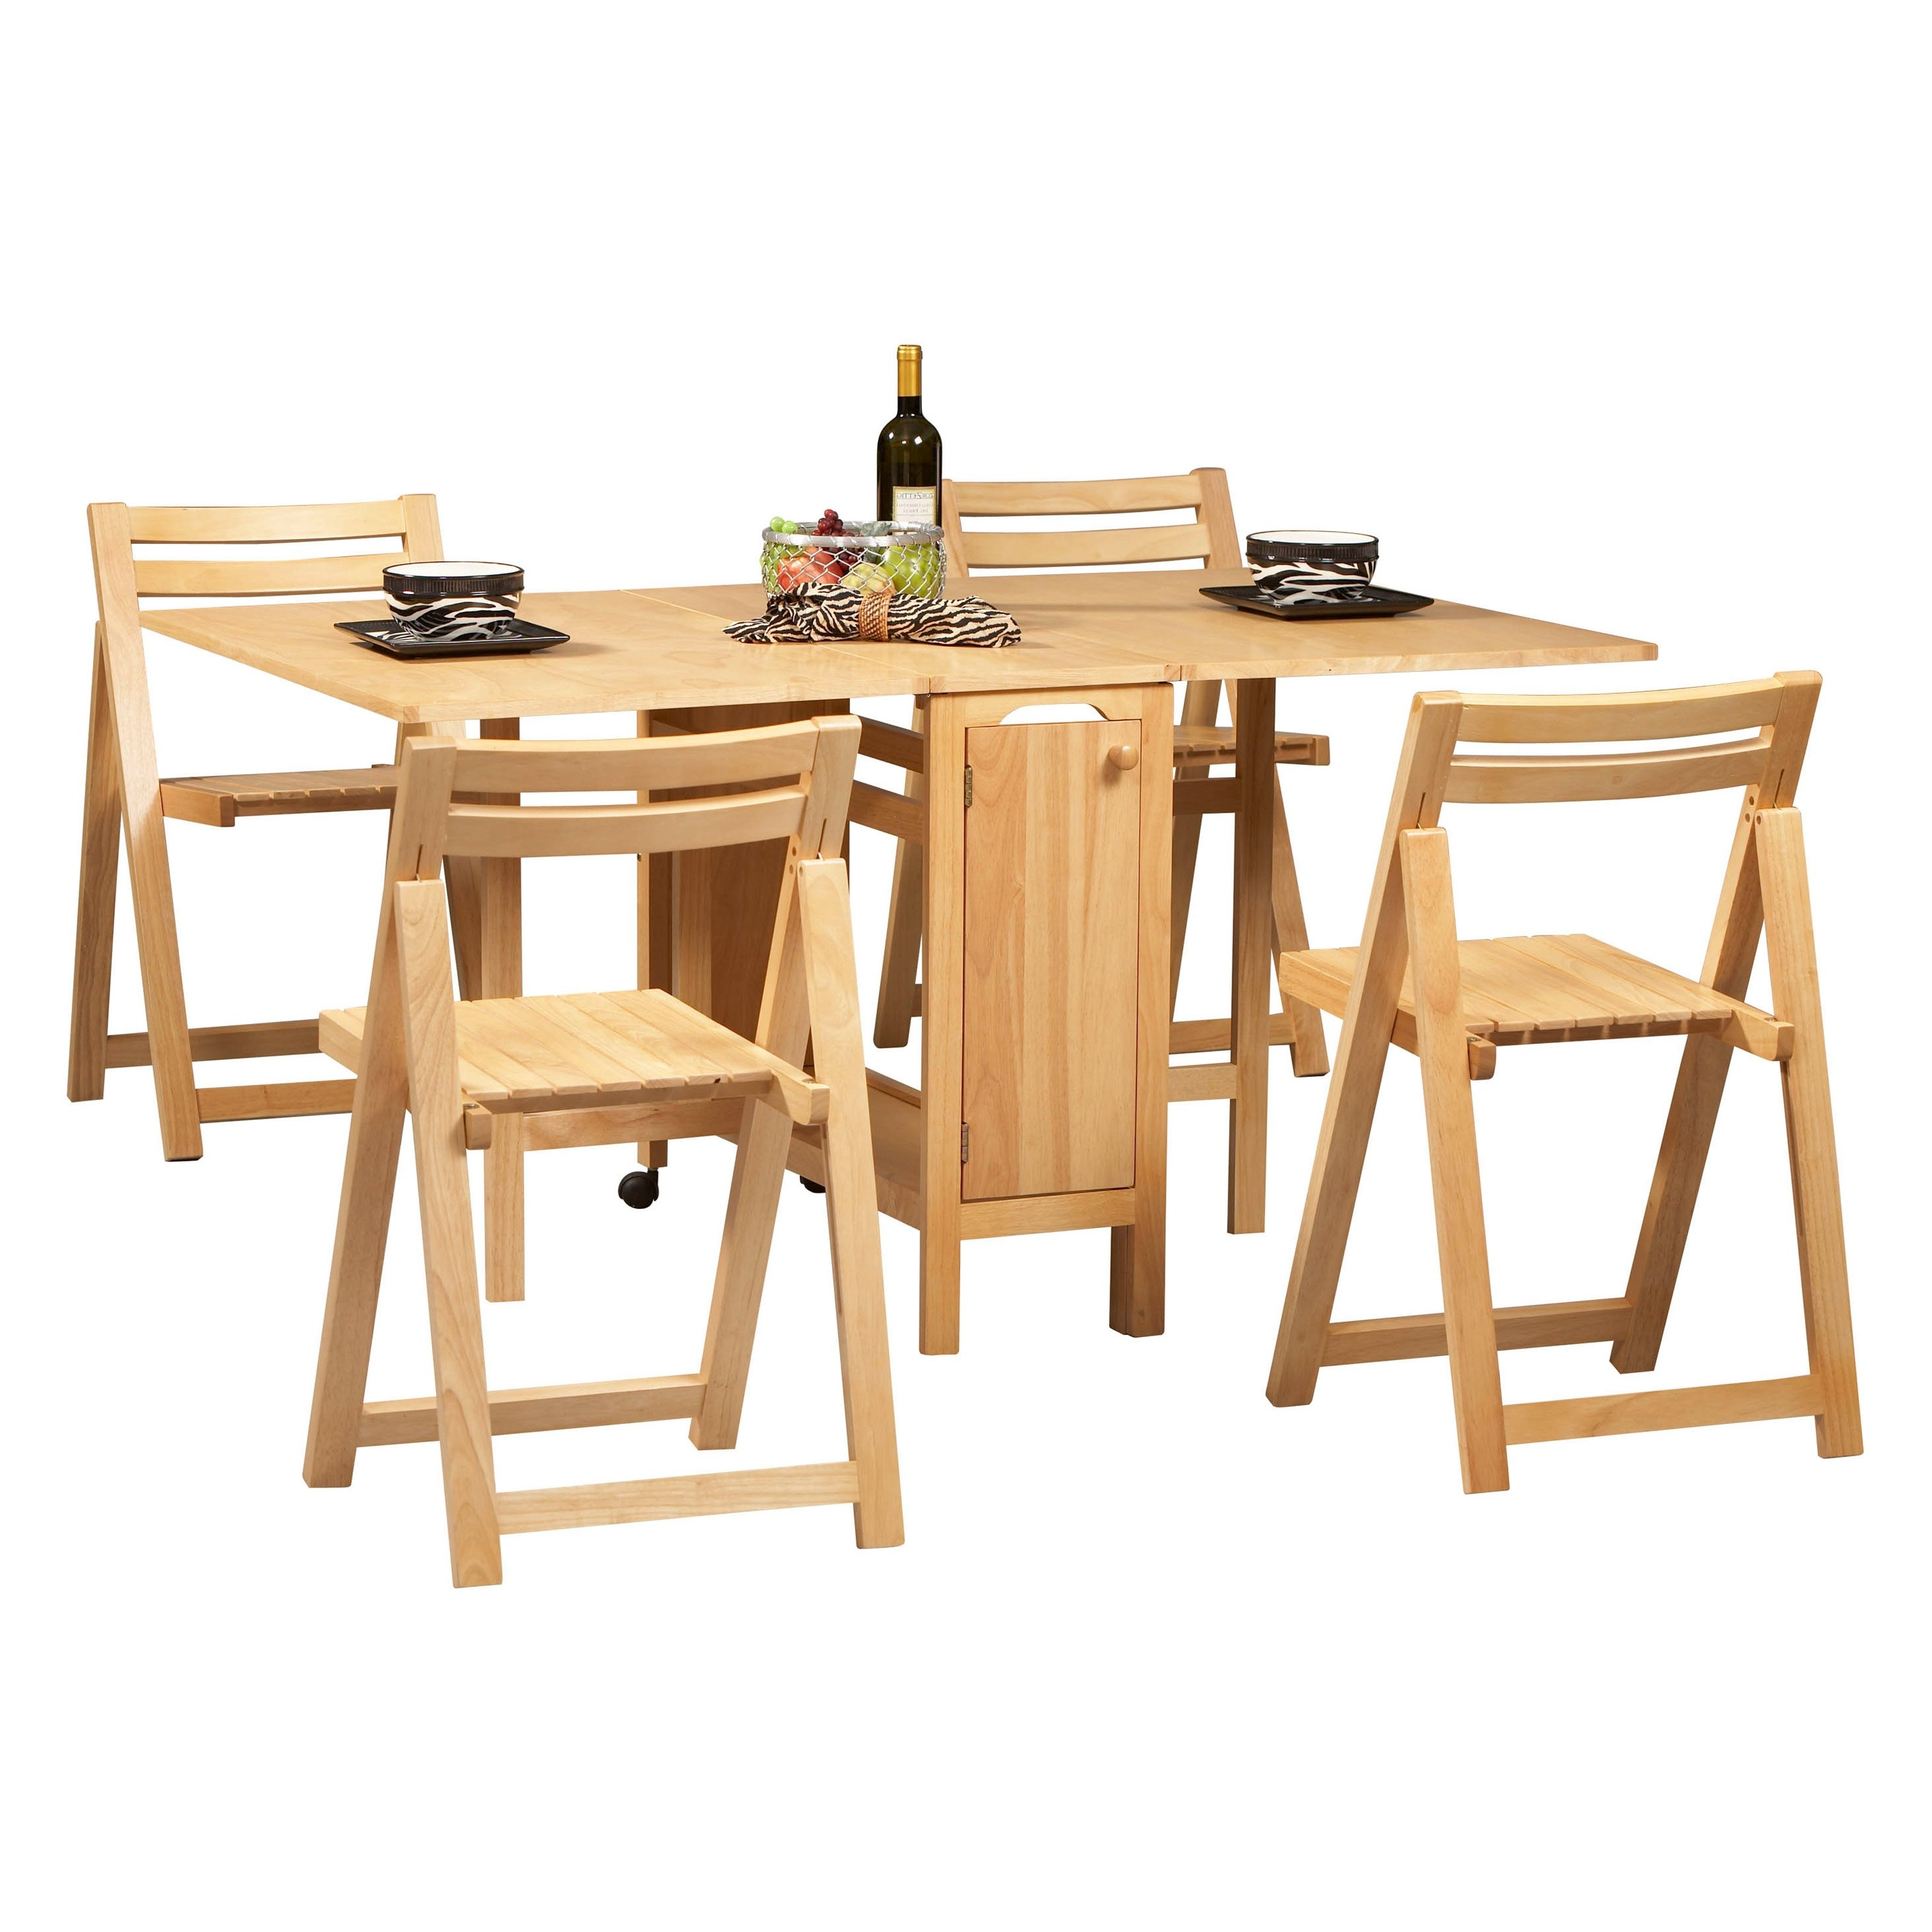 2017 Folding Dining Table Sets – Castrophotos Regarding Oval Folding Dining Tables (View 1 of 25)